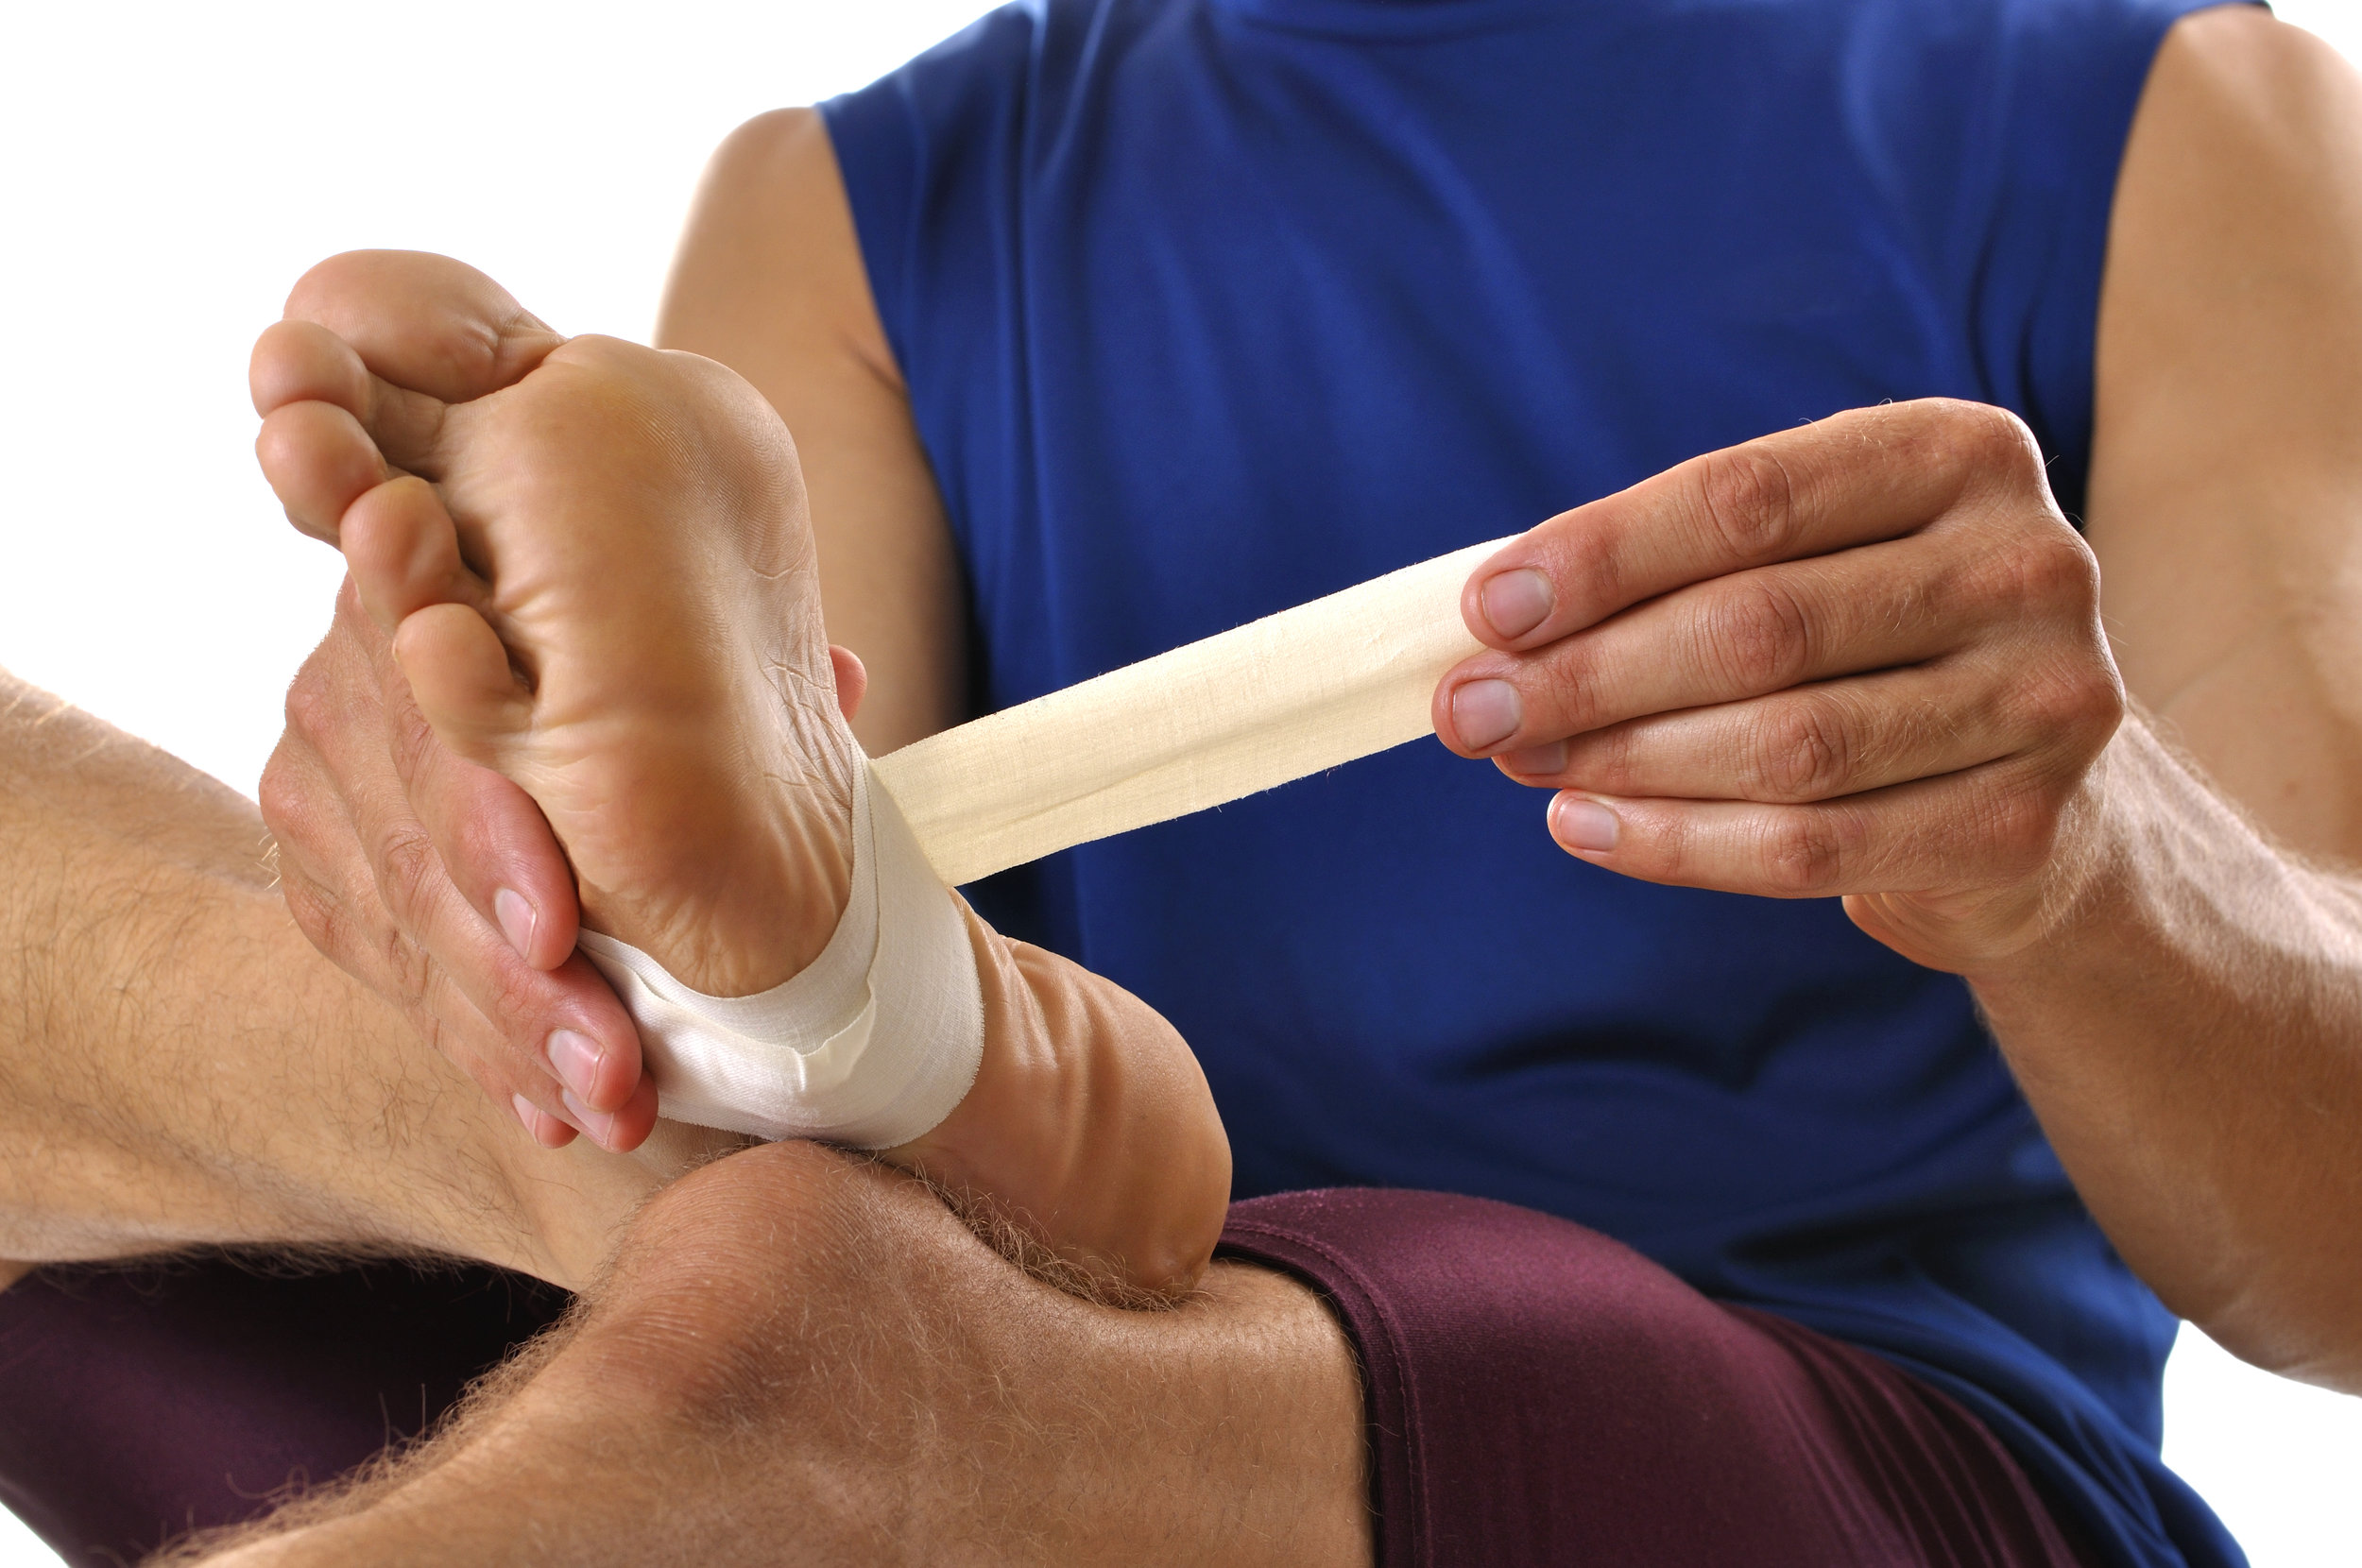 Taping Techniques for Sports Performance and Injury Management  *A Chance to Earn Your Black Belt in Taping - Includes step by step instructions and guided video for over 30 taping techniques